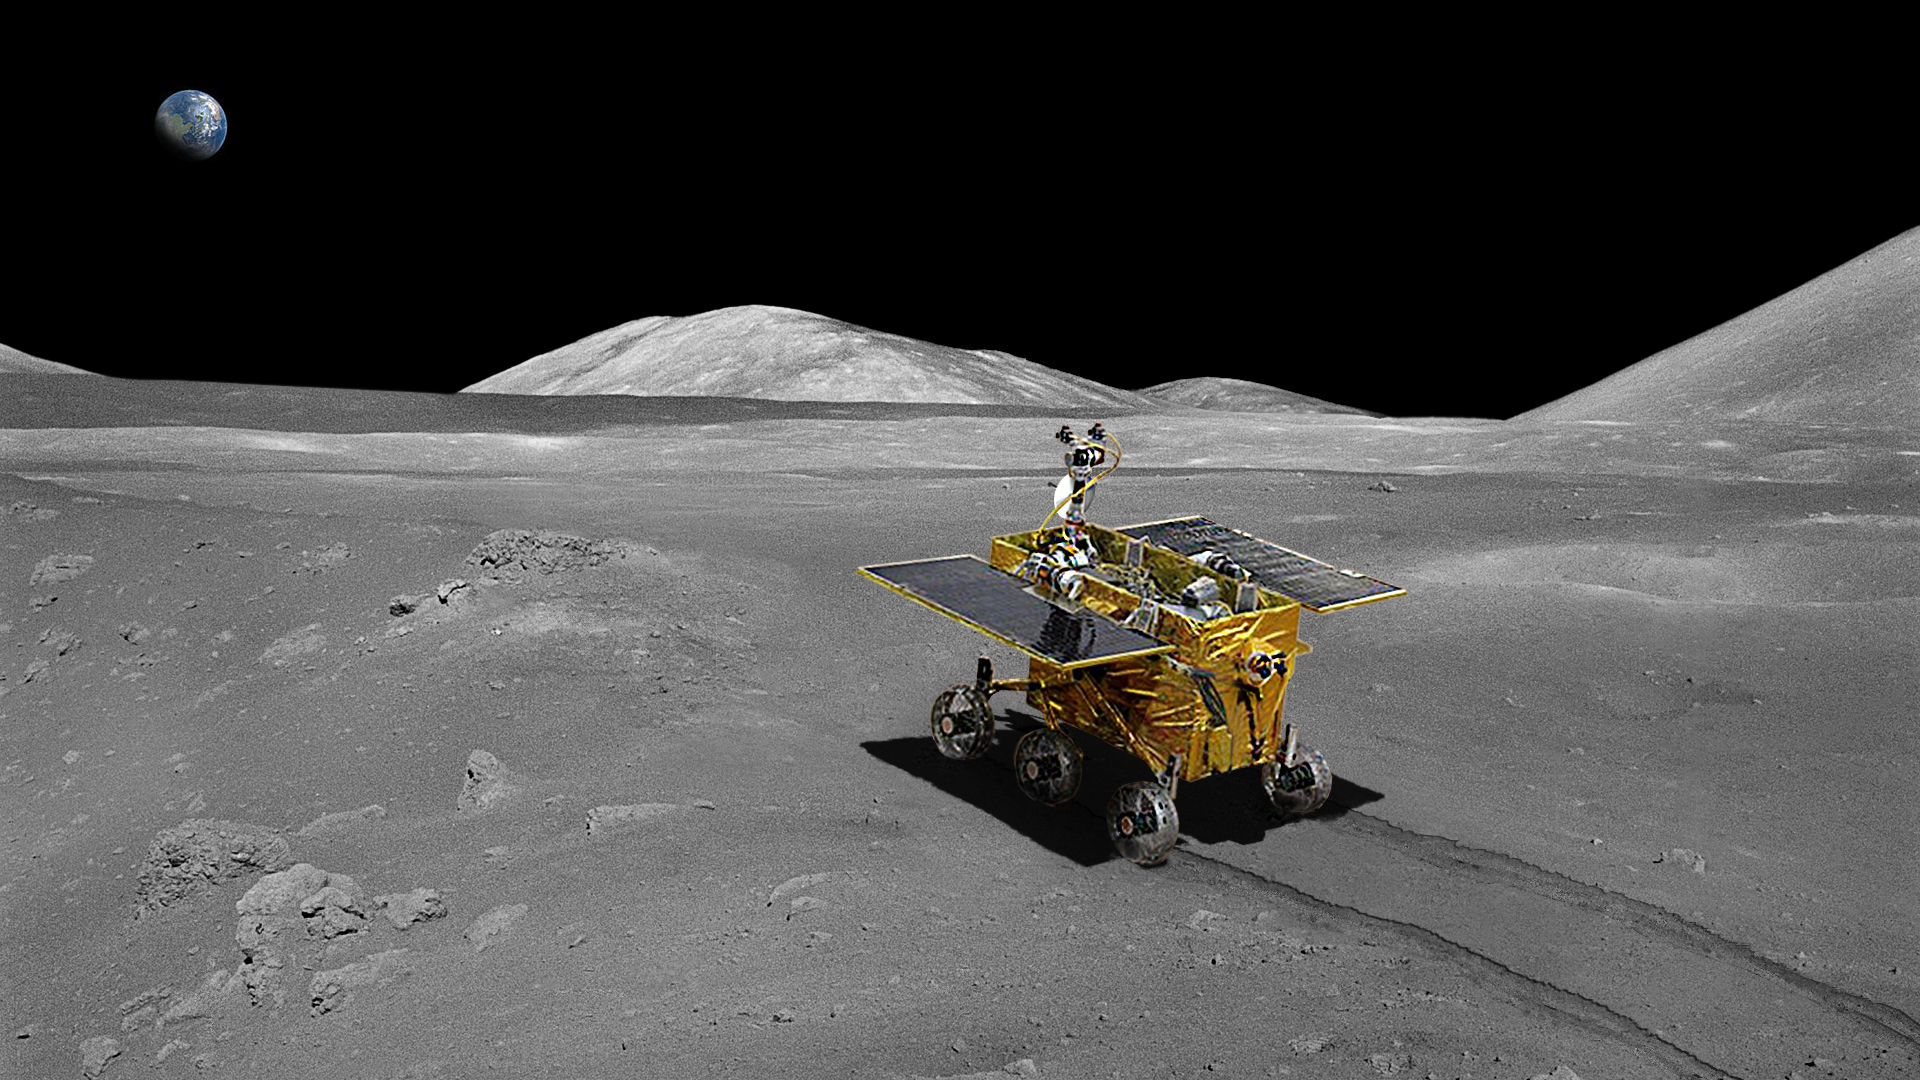 The Chinese Nationale Administration Successfully Soft Landed The Change 3 Lander With The Yutu Rover On The Moon Today At 811 A M Est 1311 Gmt